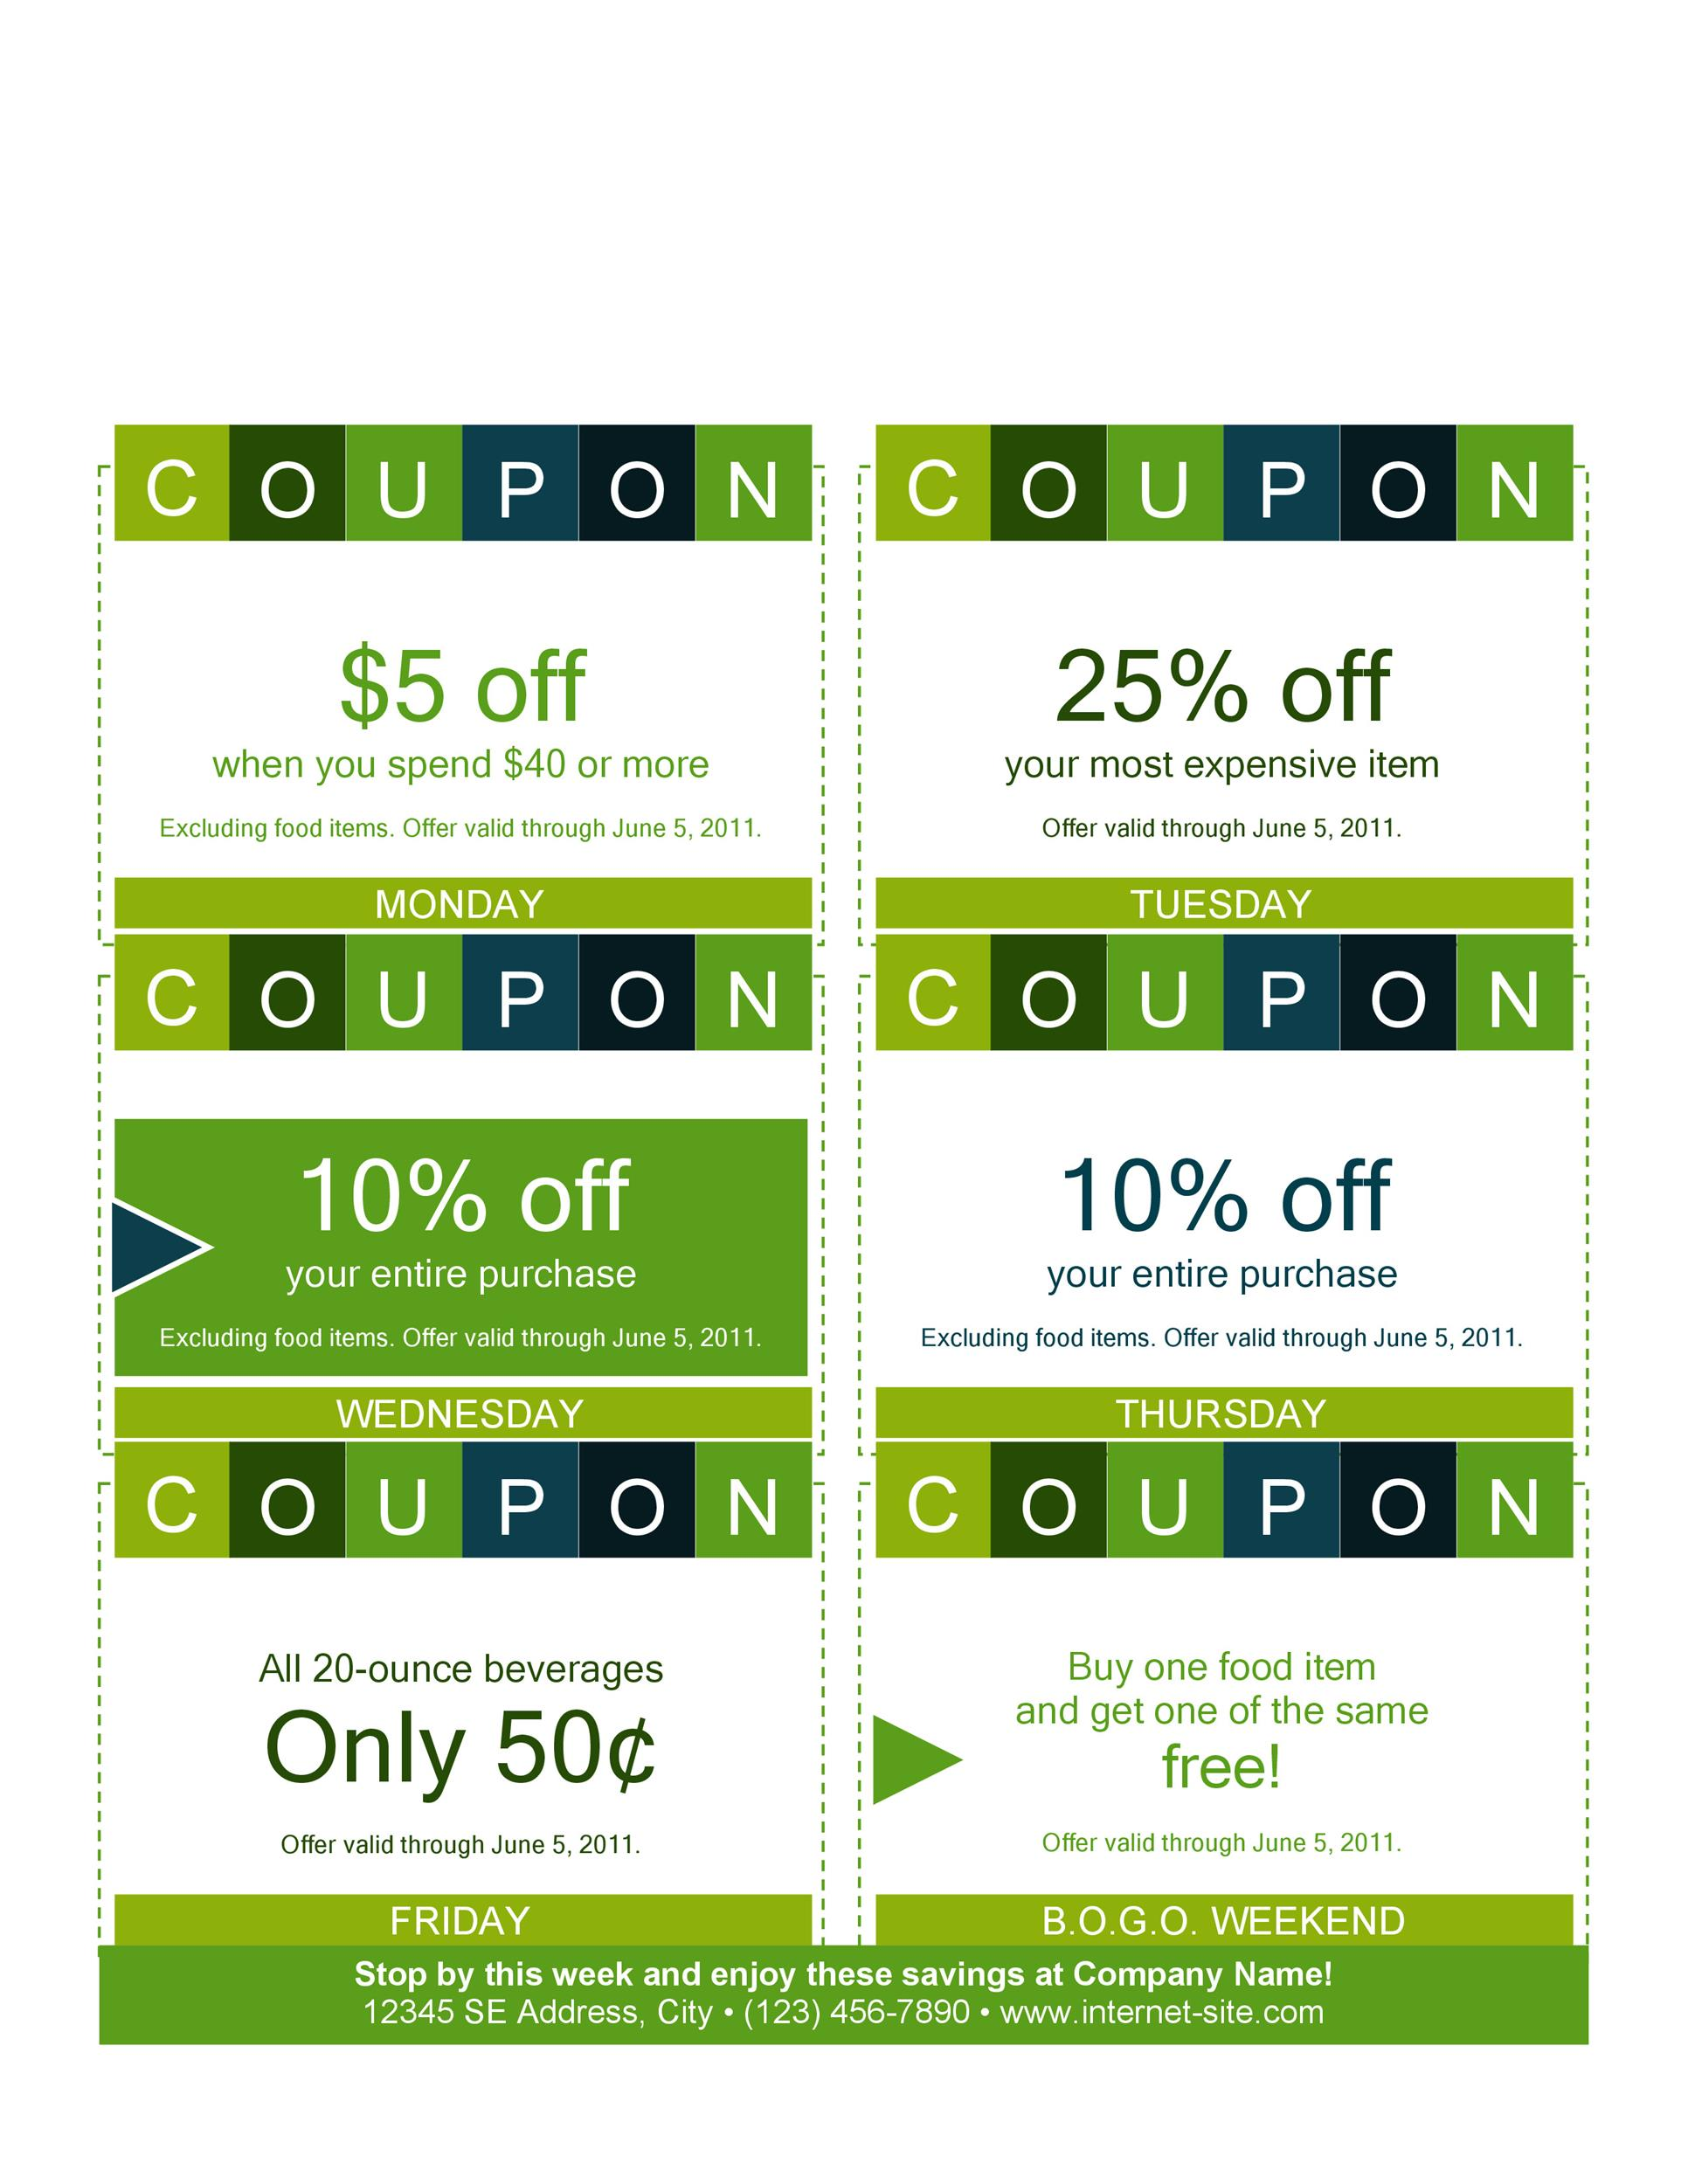 50 Free Coupon Templates ᐅ Template Lab